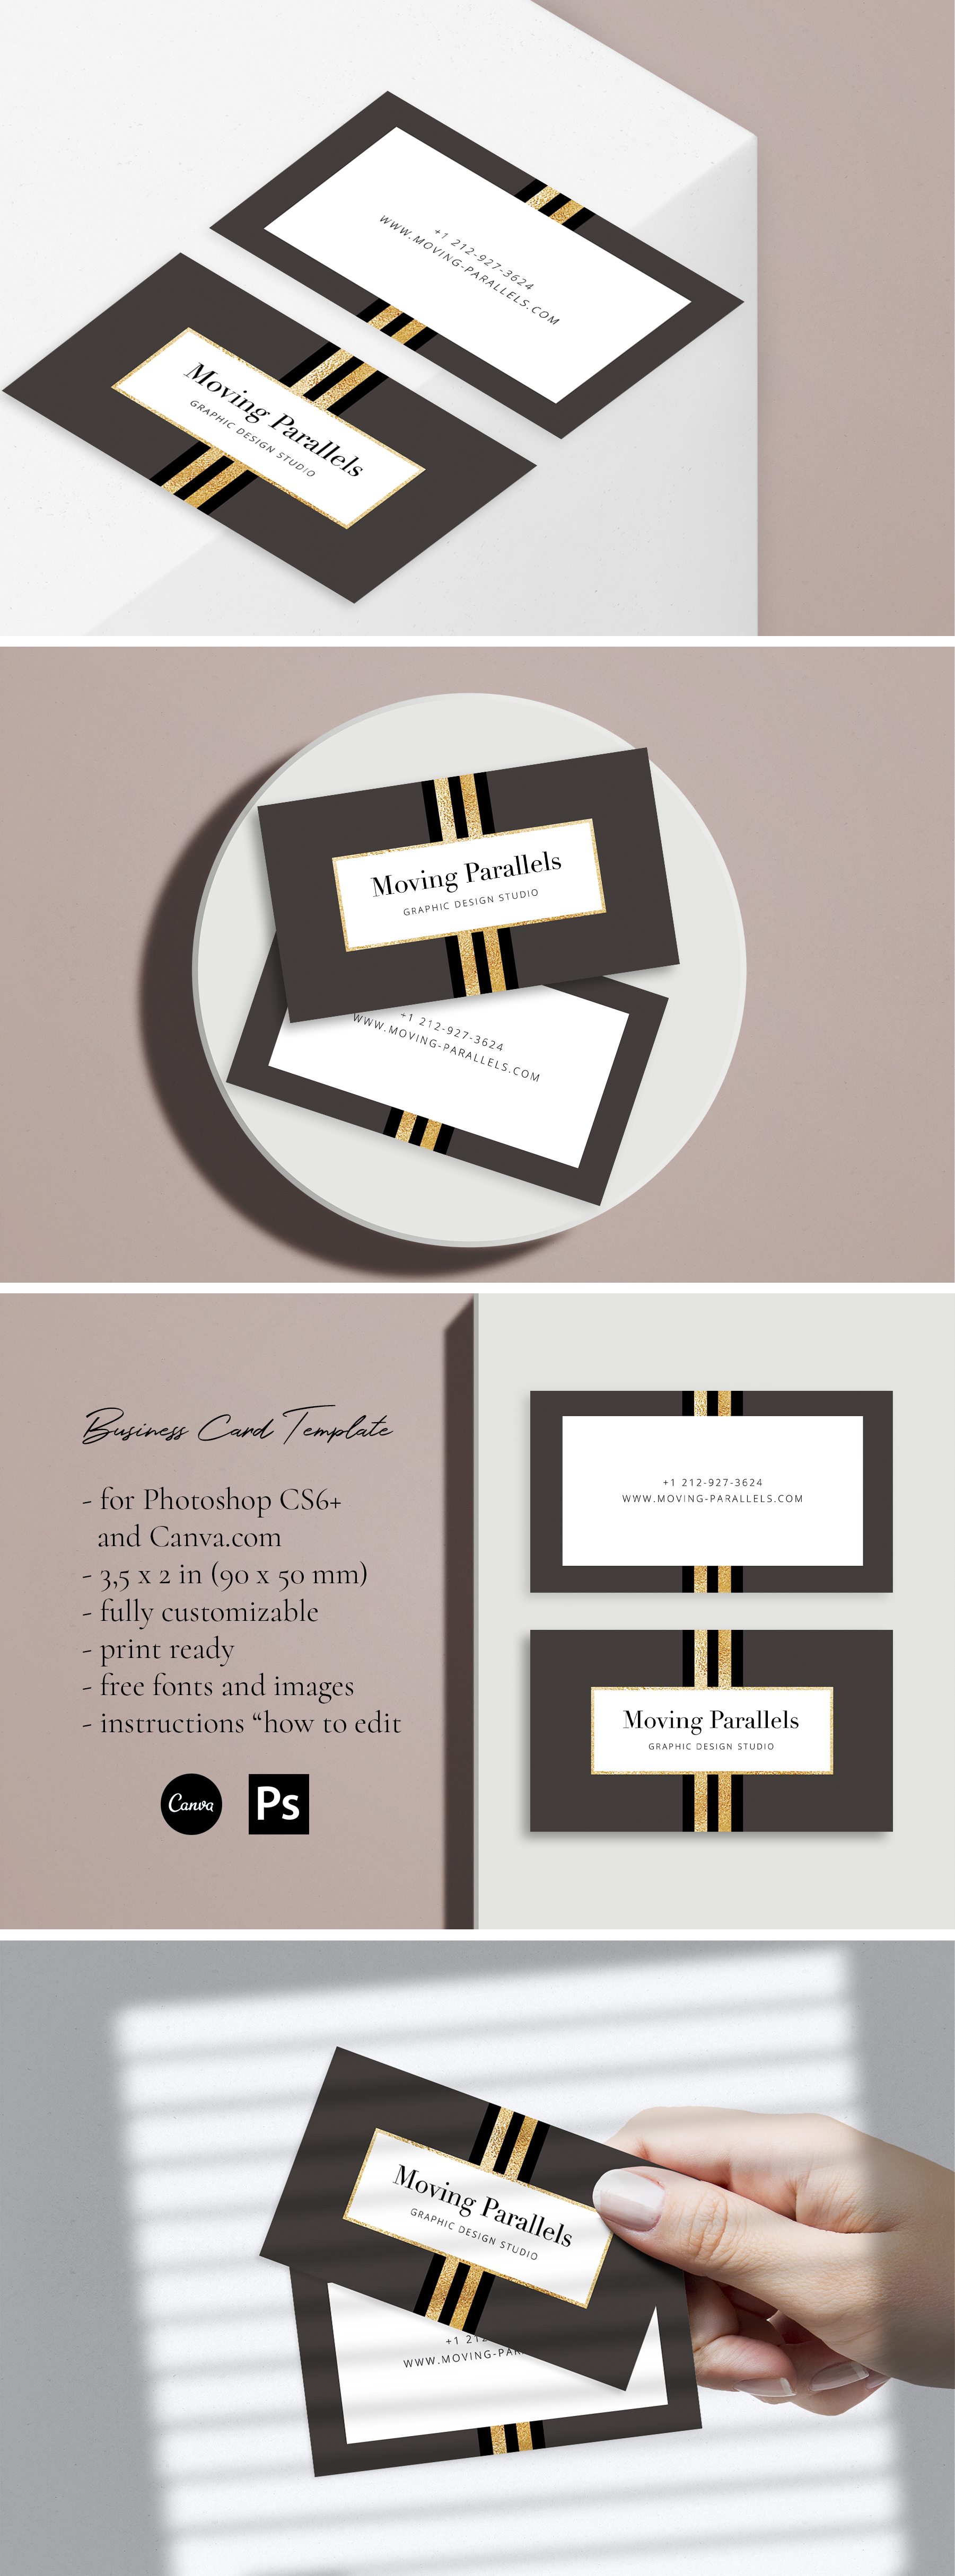 Elegant Gold Business Card 7 In 2020 Gold Business Card Business Card Template Business Card Design